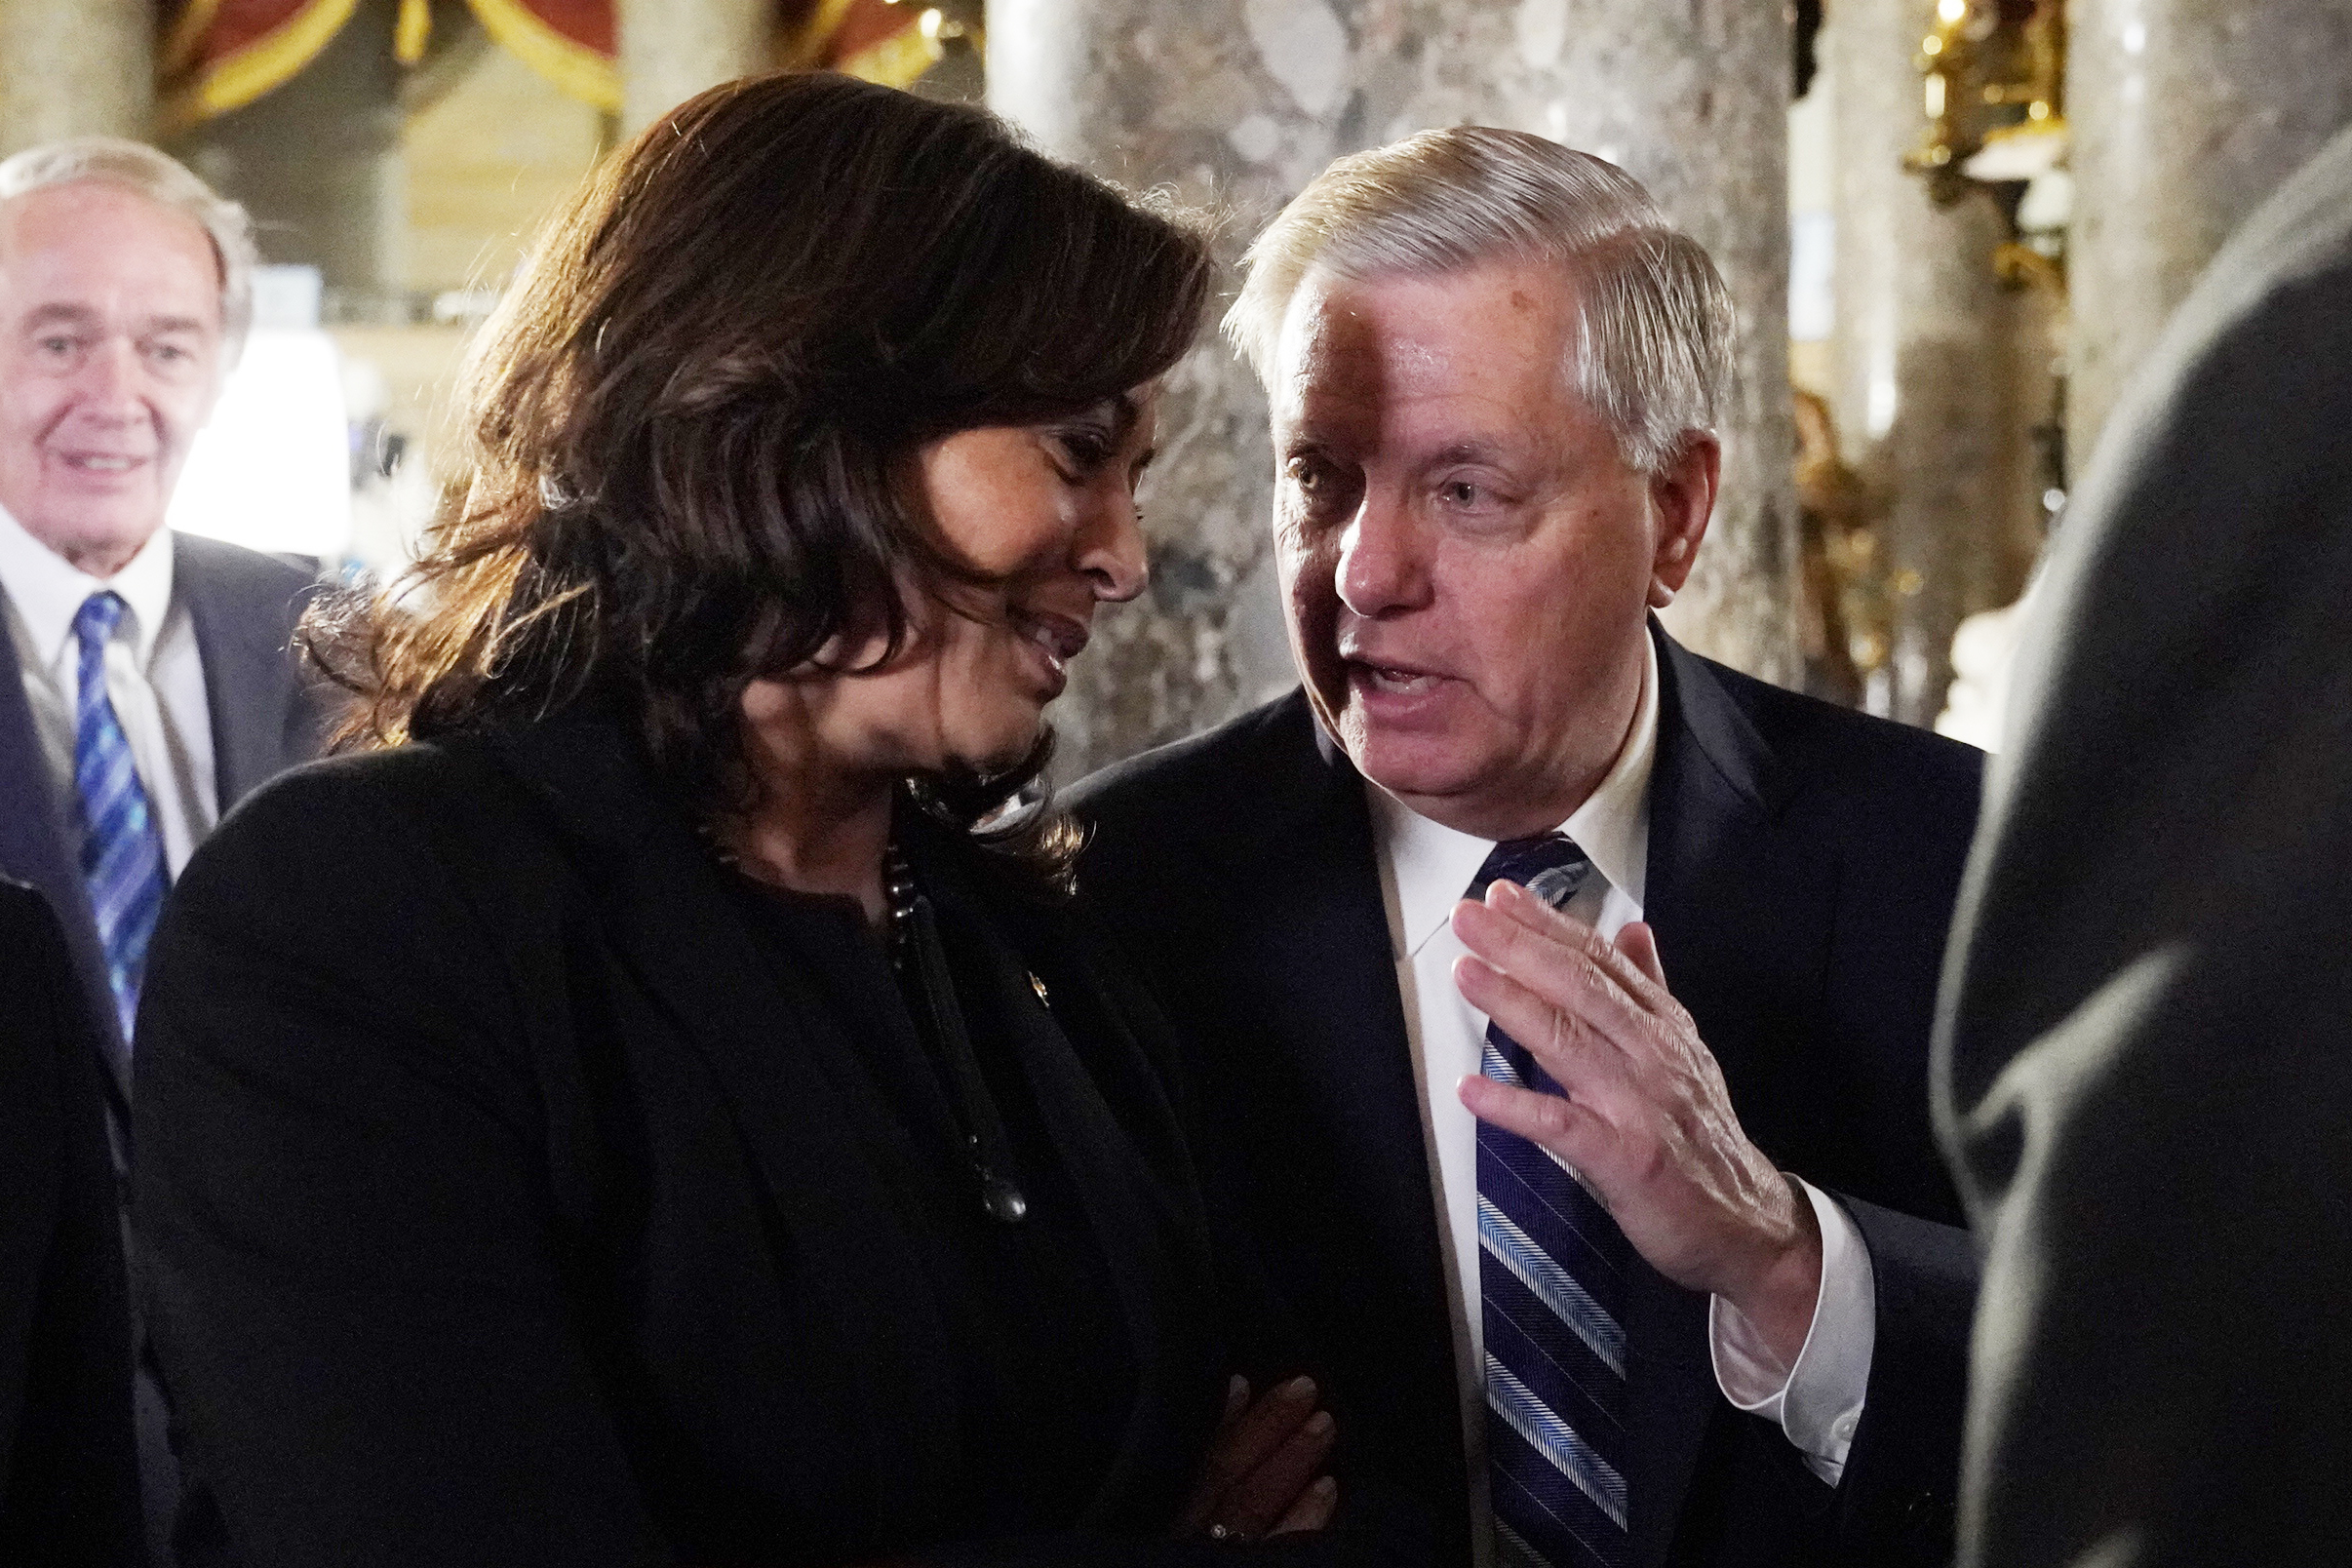 Sen. Kamala Harris, D-Calif and Sen. Lindsey Graham, R-S.C. talk as they arrive to listen to President Donald Trump deliver his State of the Union address to a joint session of Congress on Capitol Hill in Washington, Tuesday, Feb. 5, 2019.